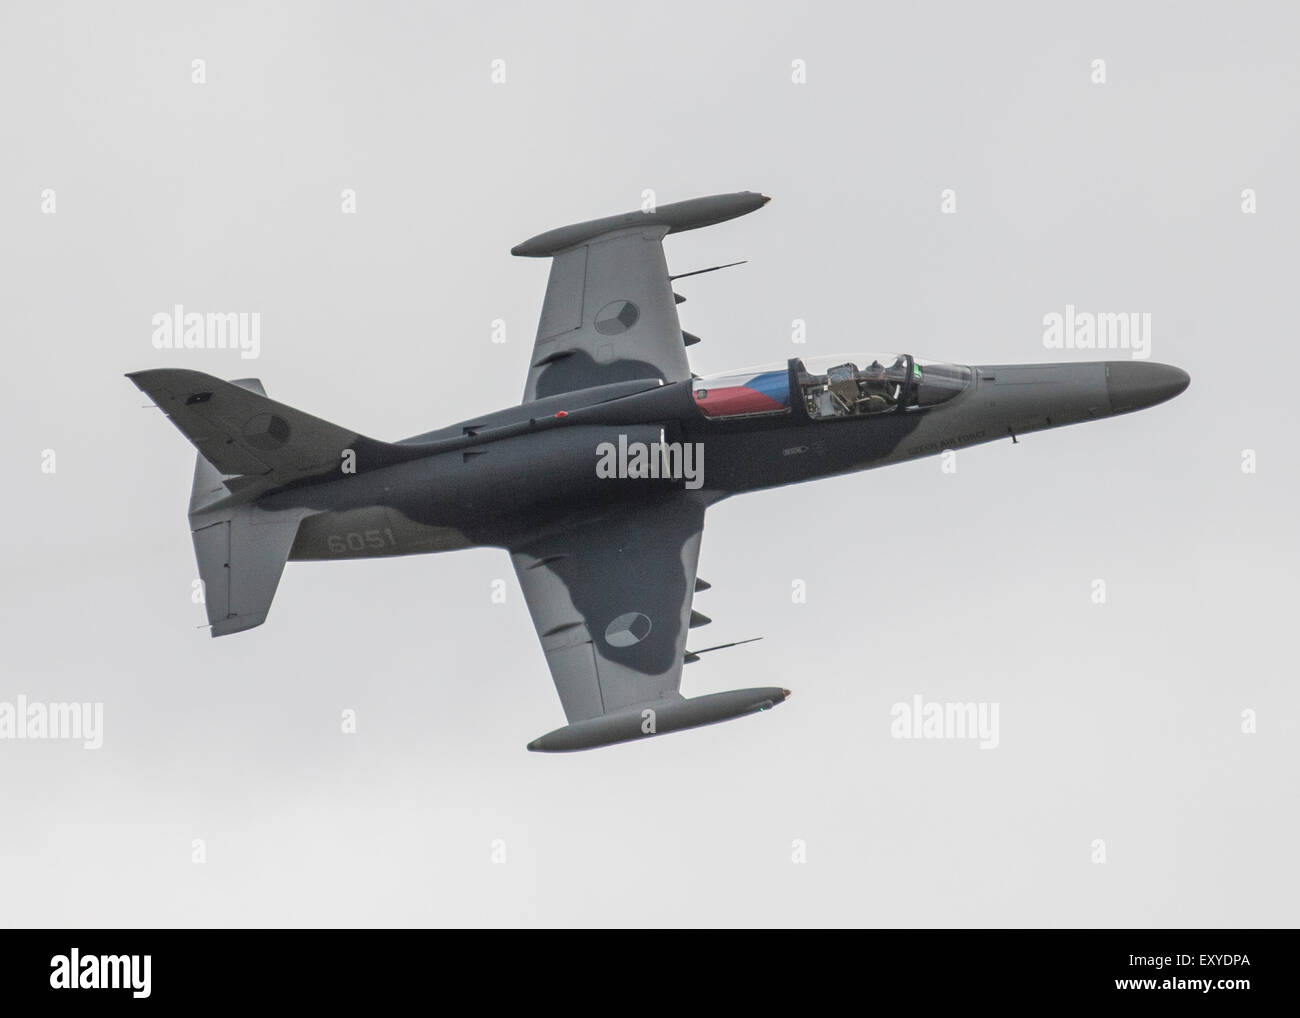 Czech Air Force Aero L-159 ALCA  jet aircraft flying at the 2015 Yeovilton Royal Navy Air Day - Stock Image